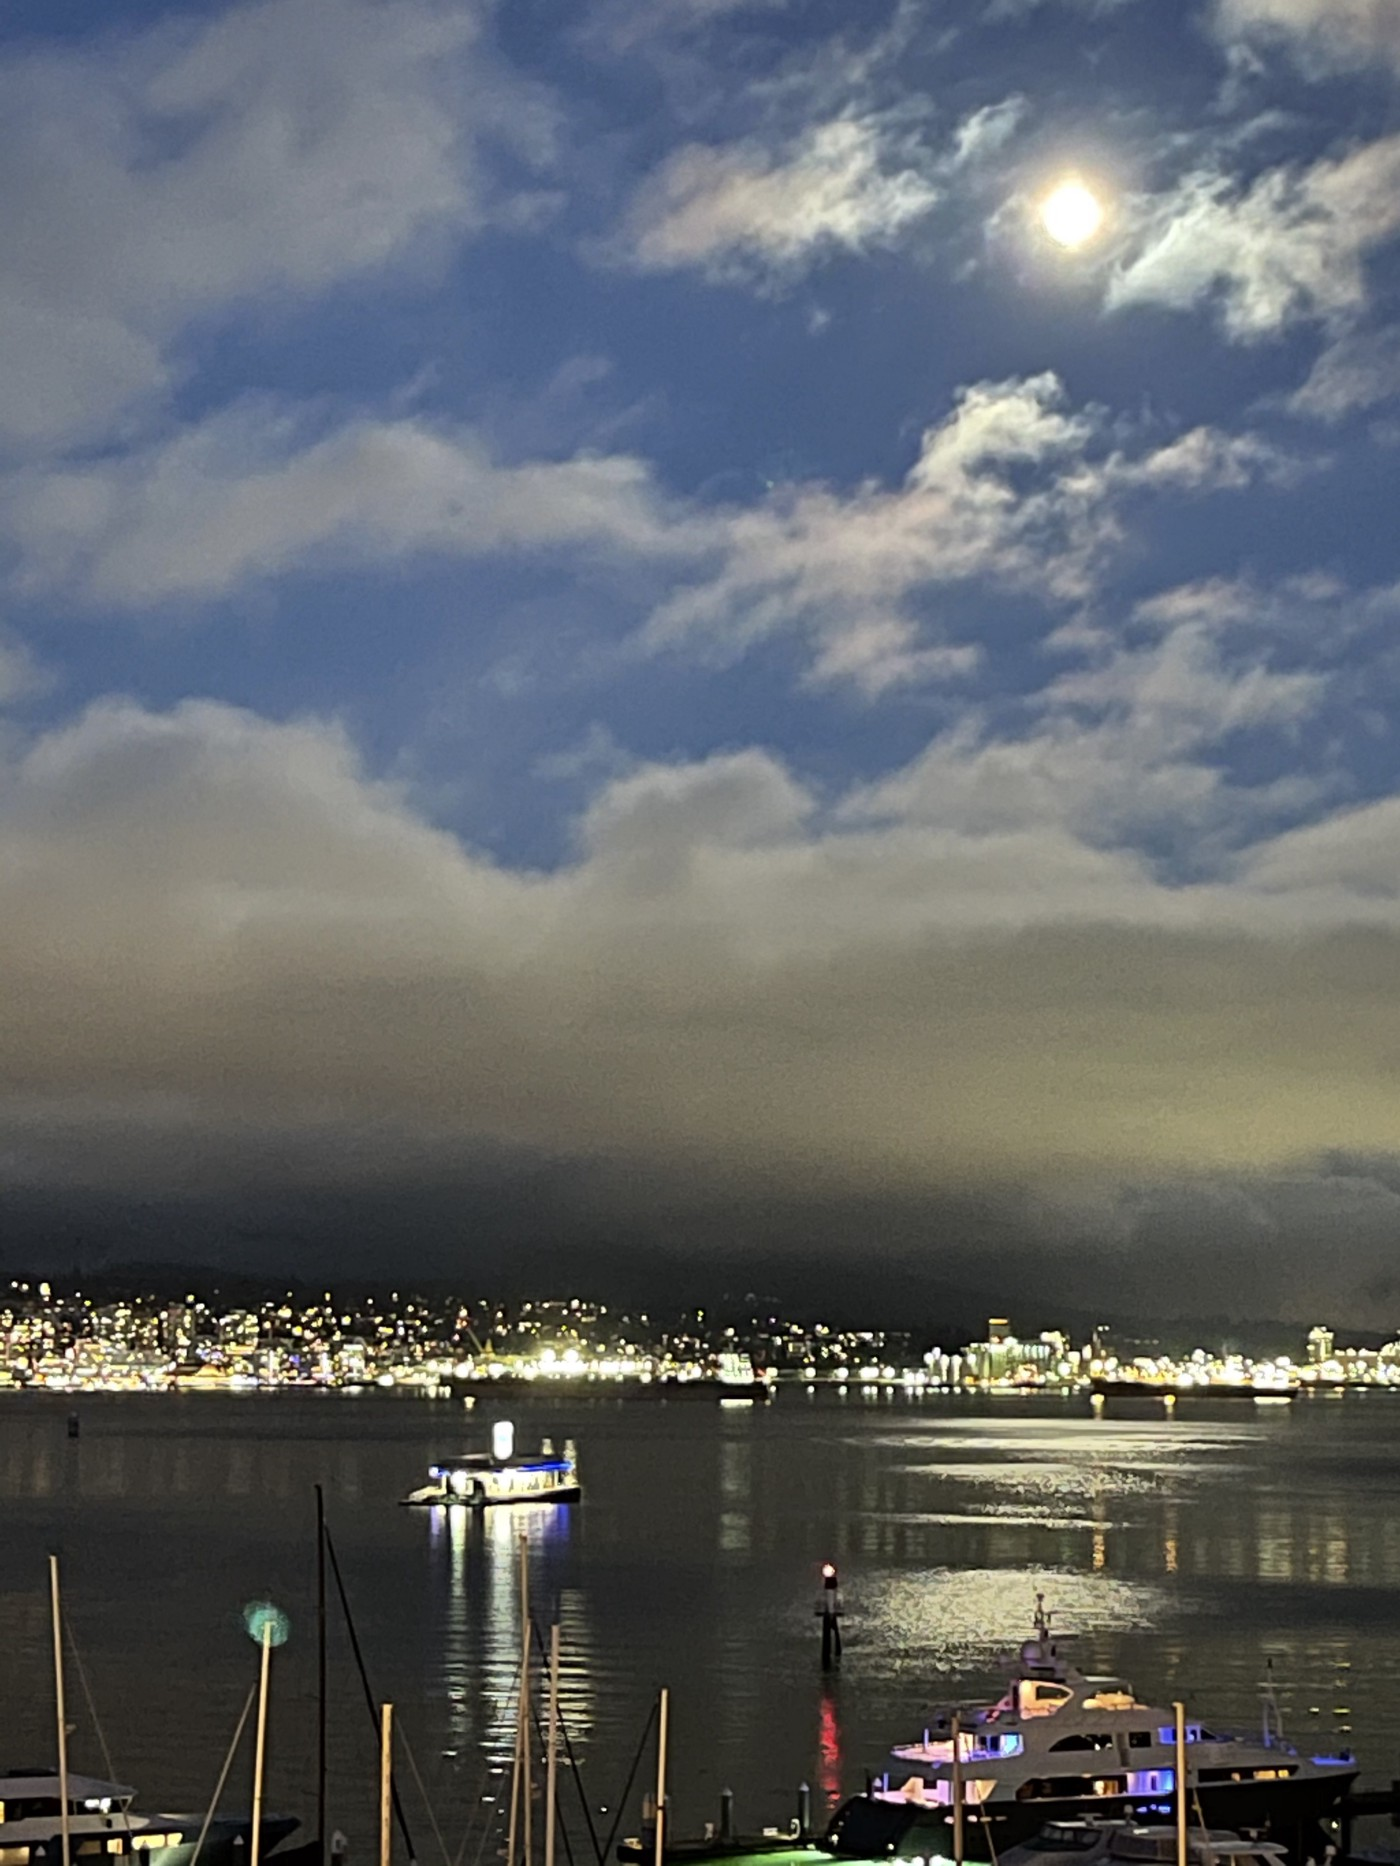 Blue dusk with almost full moon above low clouds, city and boat lights. The moon is reflected zigzagging on the water.